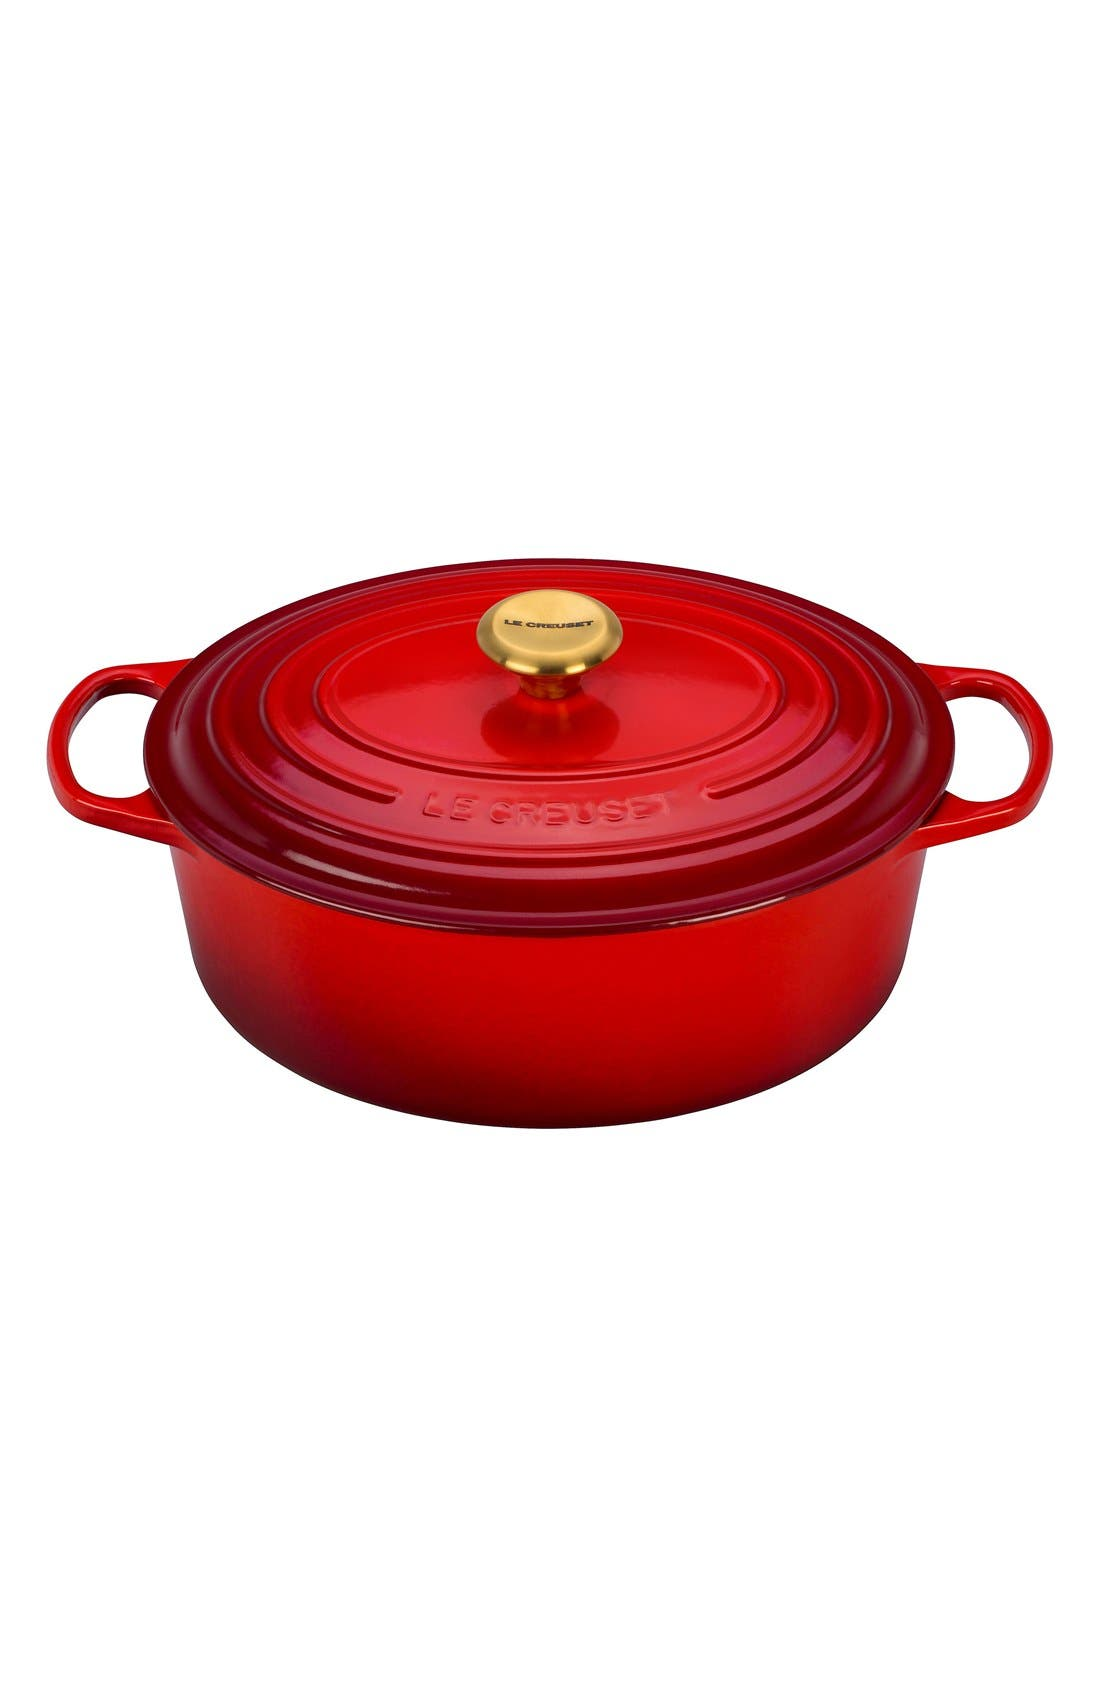 Alternate Image 1 Selected - Le Creuset Signature 6 3/4 Quart Oval Enamel Cast Iron French/Dutch Oven